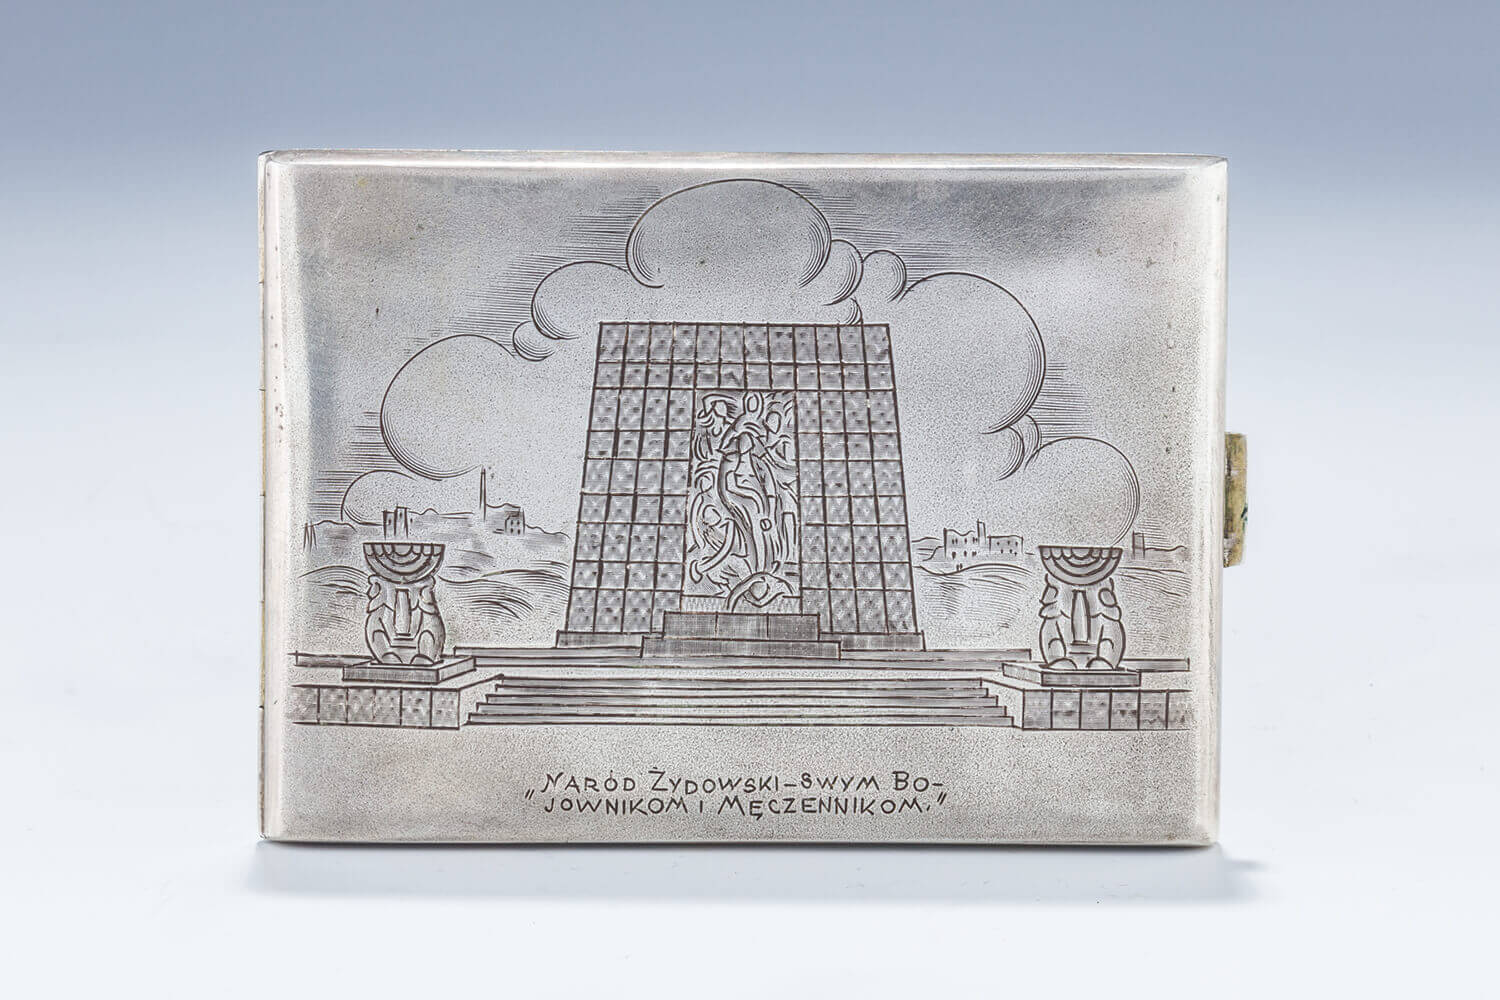 016. A SILVER CIGARETTE BOX